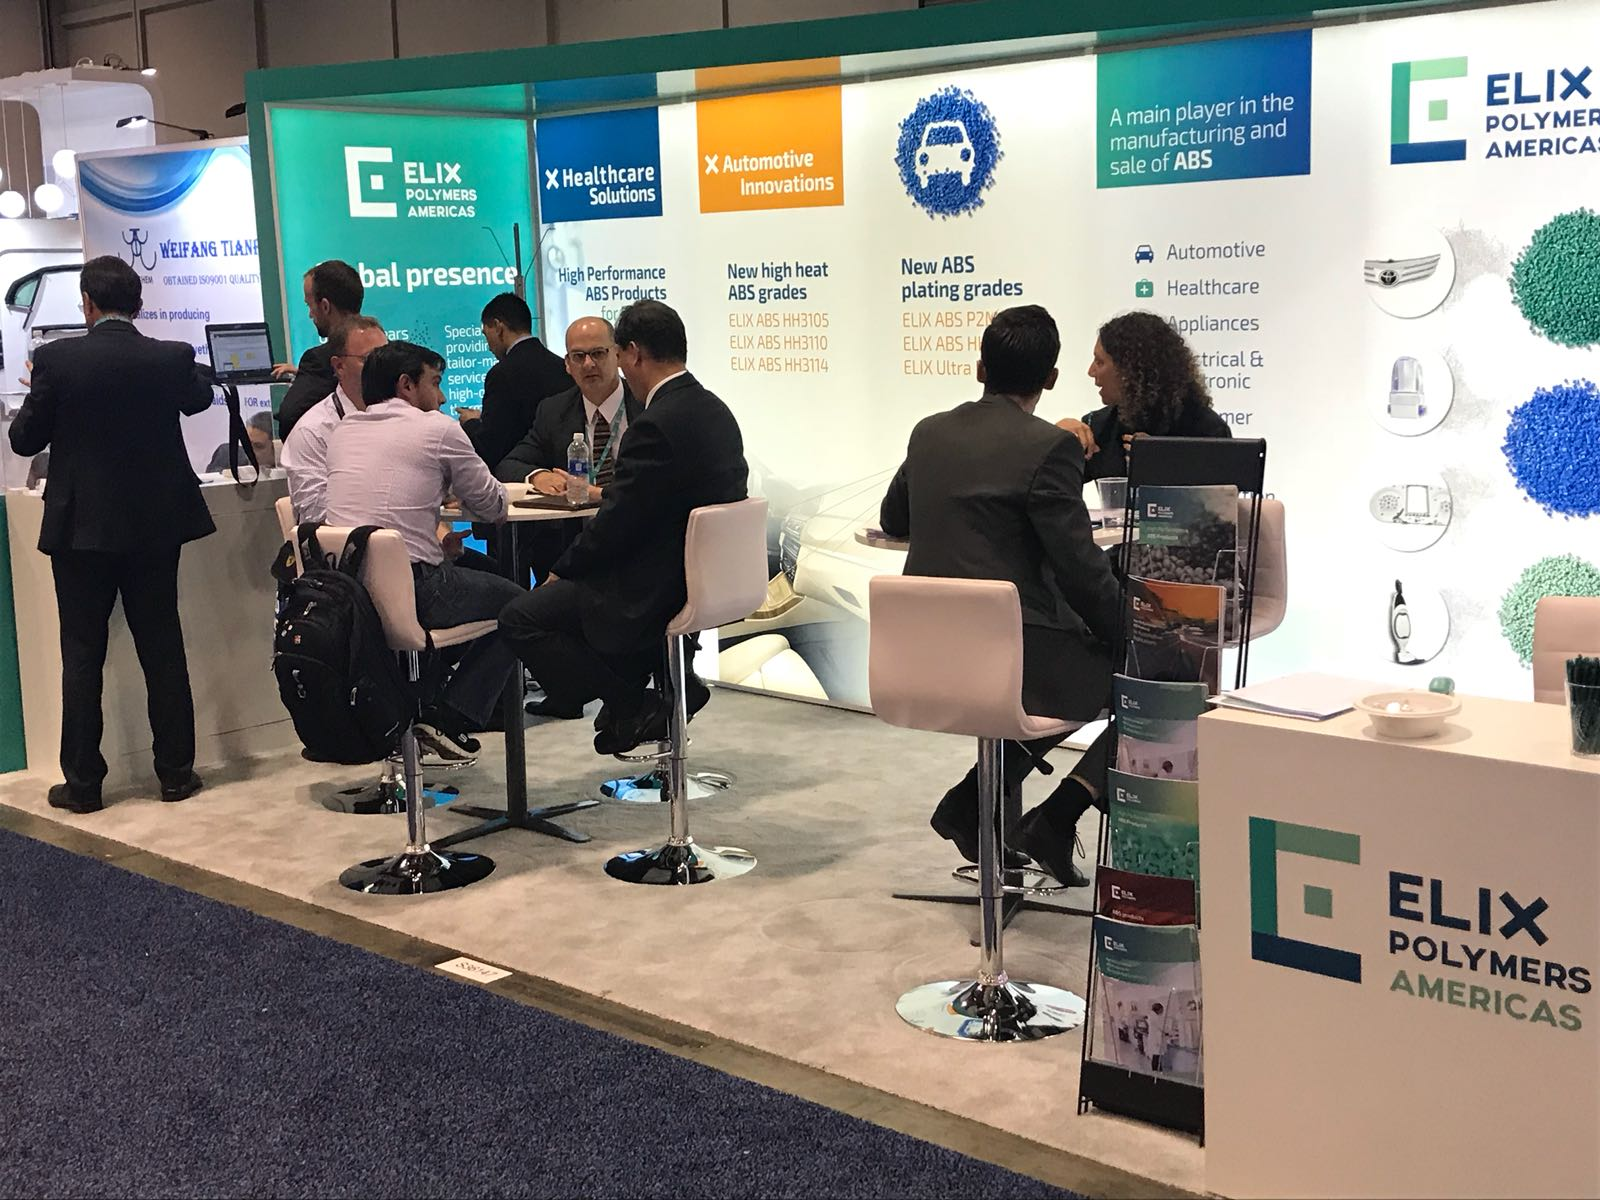 ELIX POLYMERS makes its debut at the NPE Show 2018